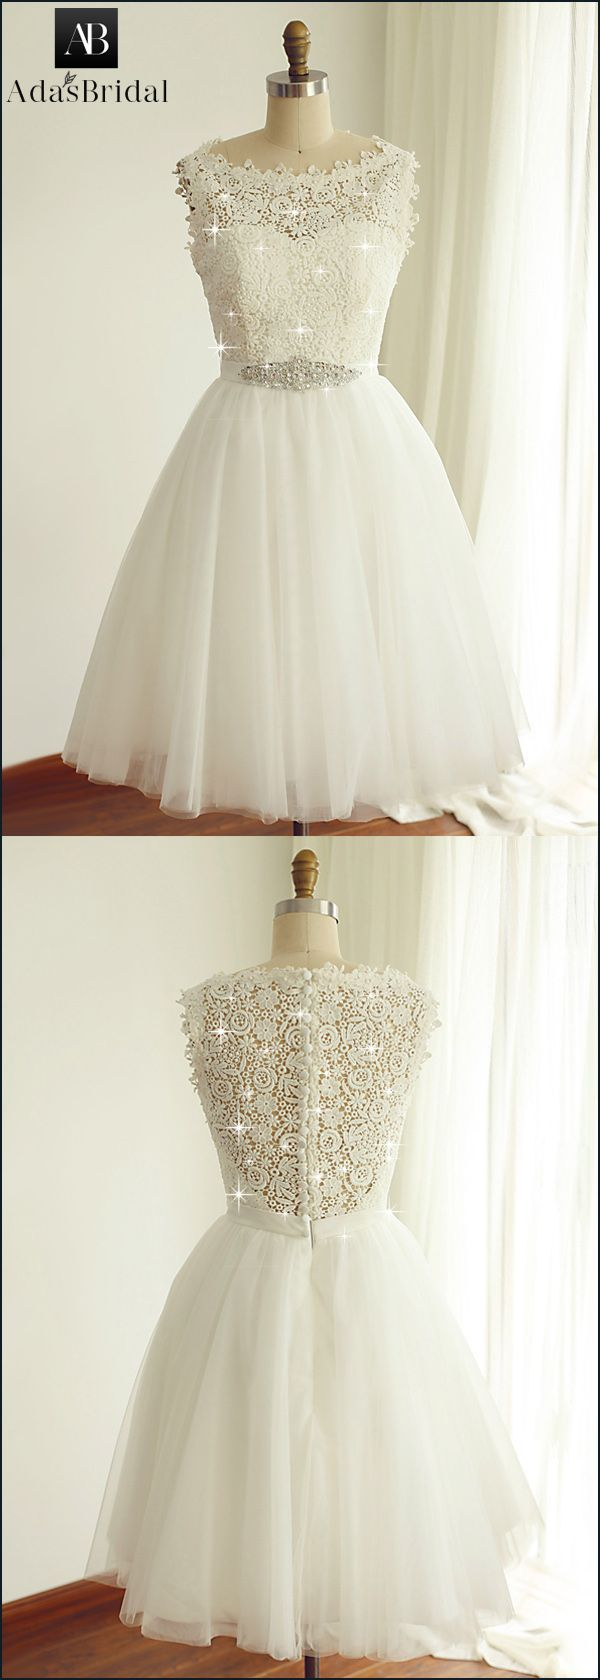 Modest Tulle & Lace Bateau Neckline Sleeveless Short Length A-line Wedding Dresses With Beadings